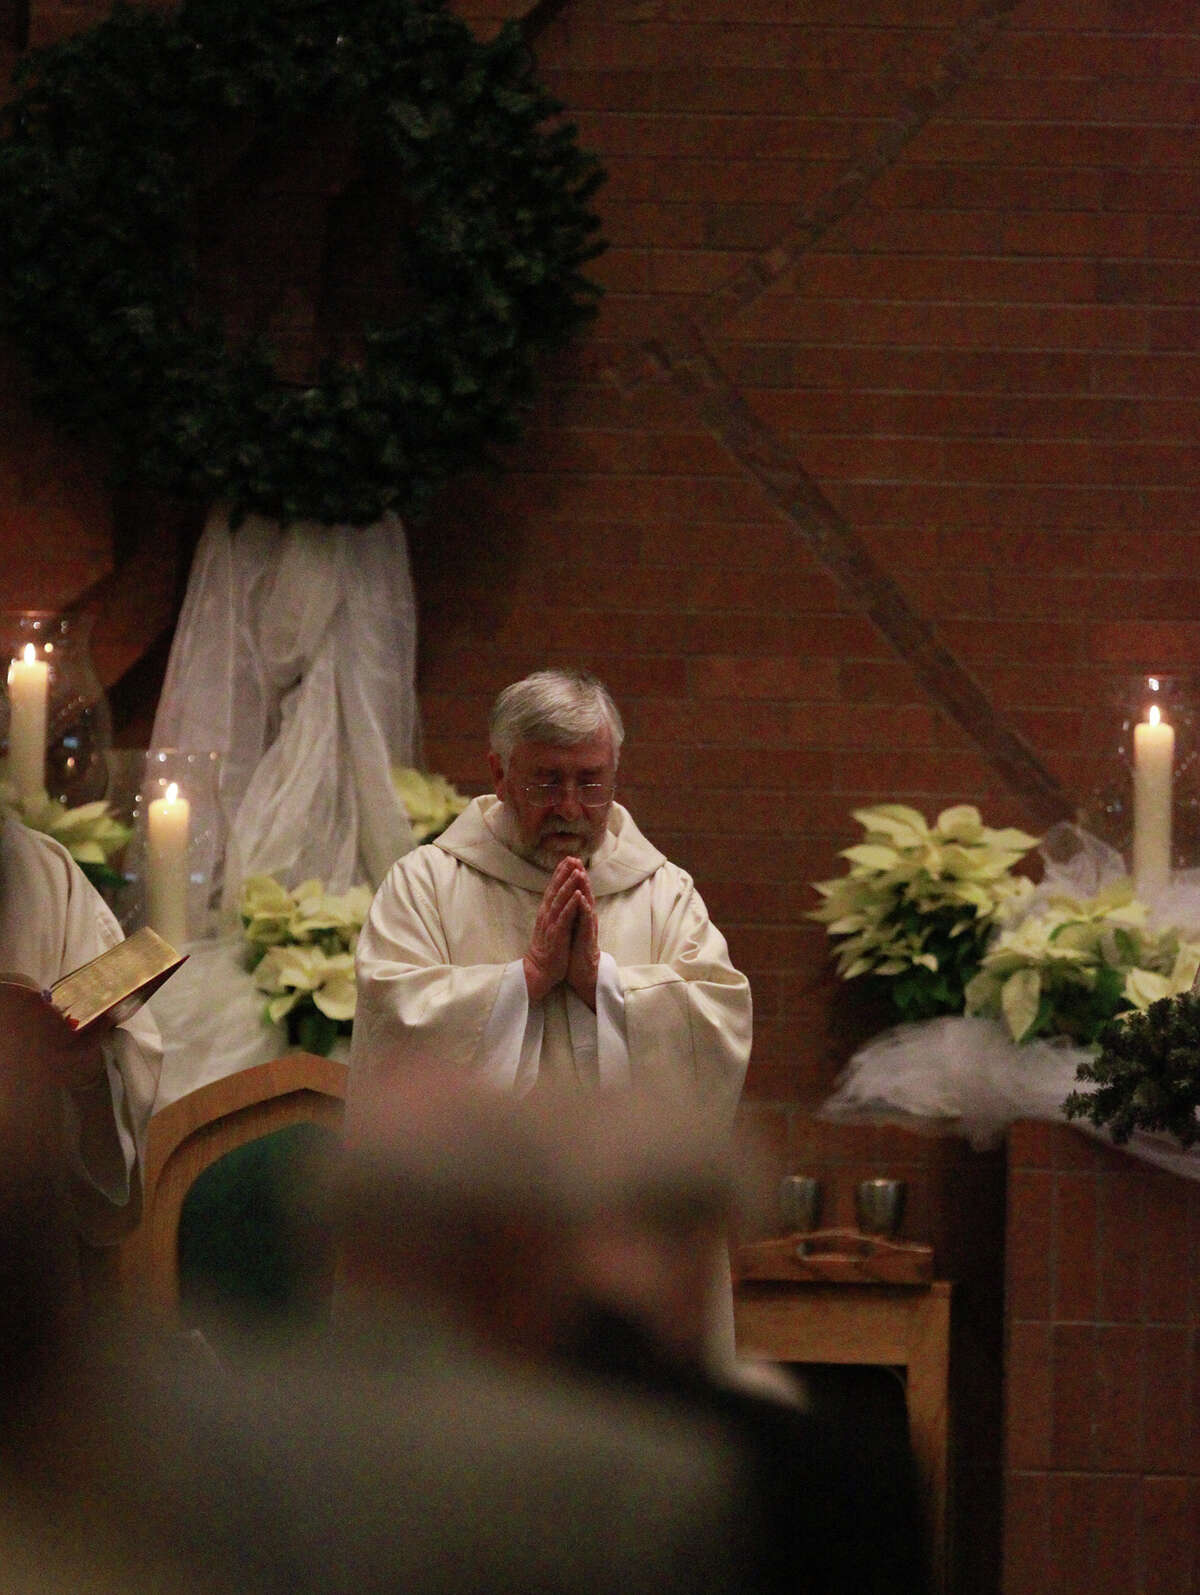 Father Kevin Ryan leads Christmas Mass Wednesday December 25, 2013 at St. Mark the Evangelist Catholic Church. The church is one of the largest Catholic parishes in San Antonio.